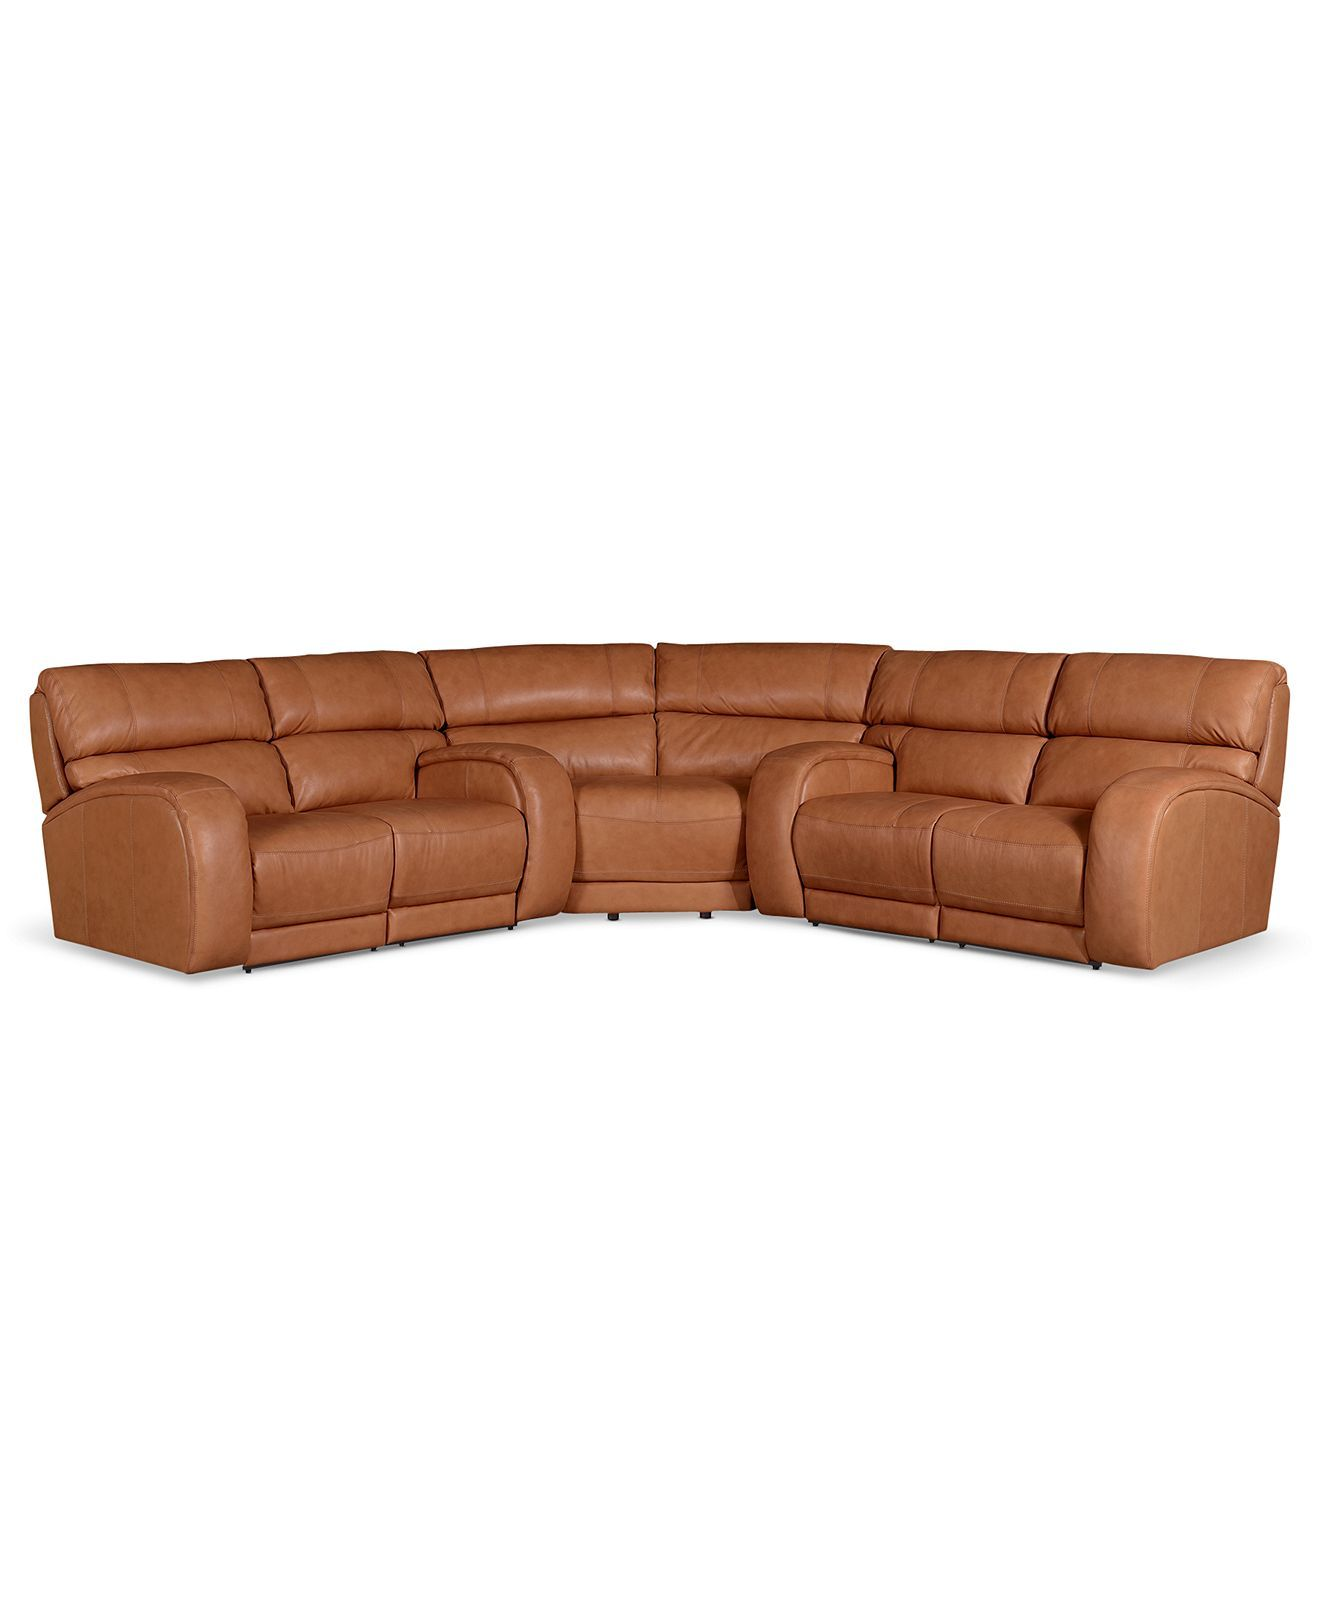 sectional reclining leather sofas wrap around sofa recliners damon 3 piece power